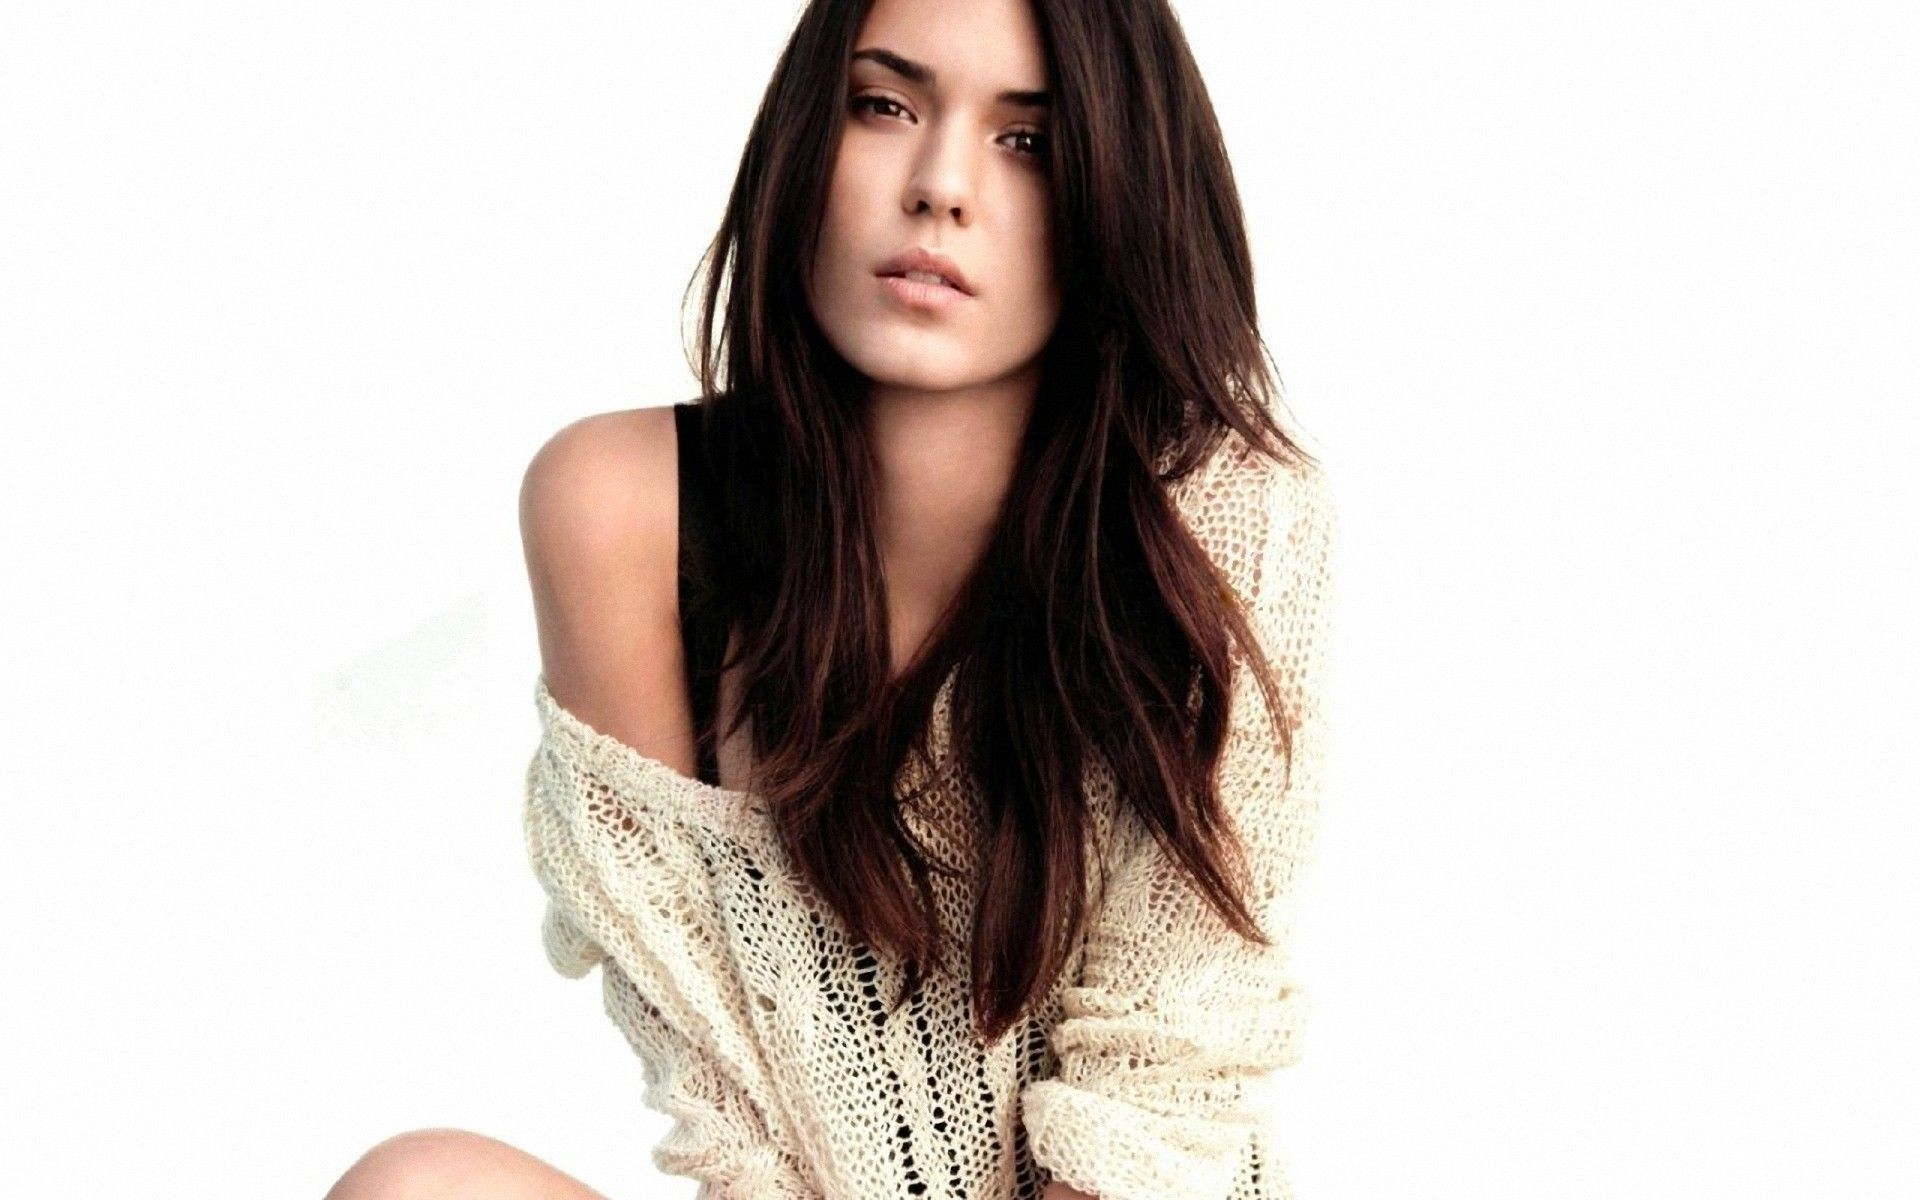 1920x1200 - Odette Annable Wallpapers 11